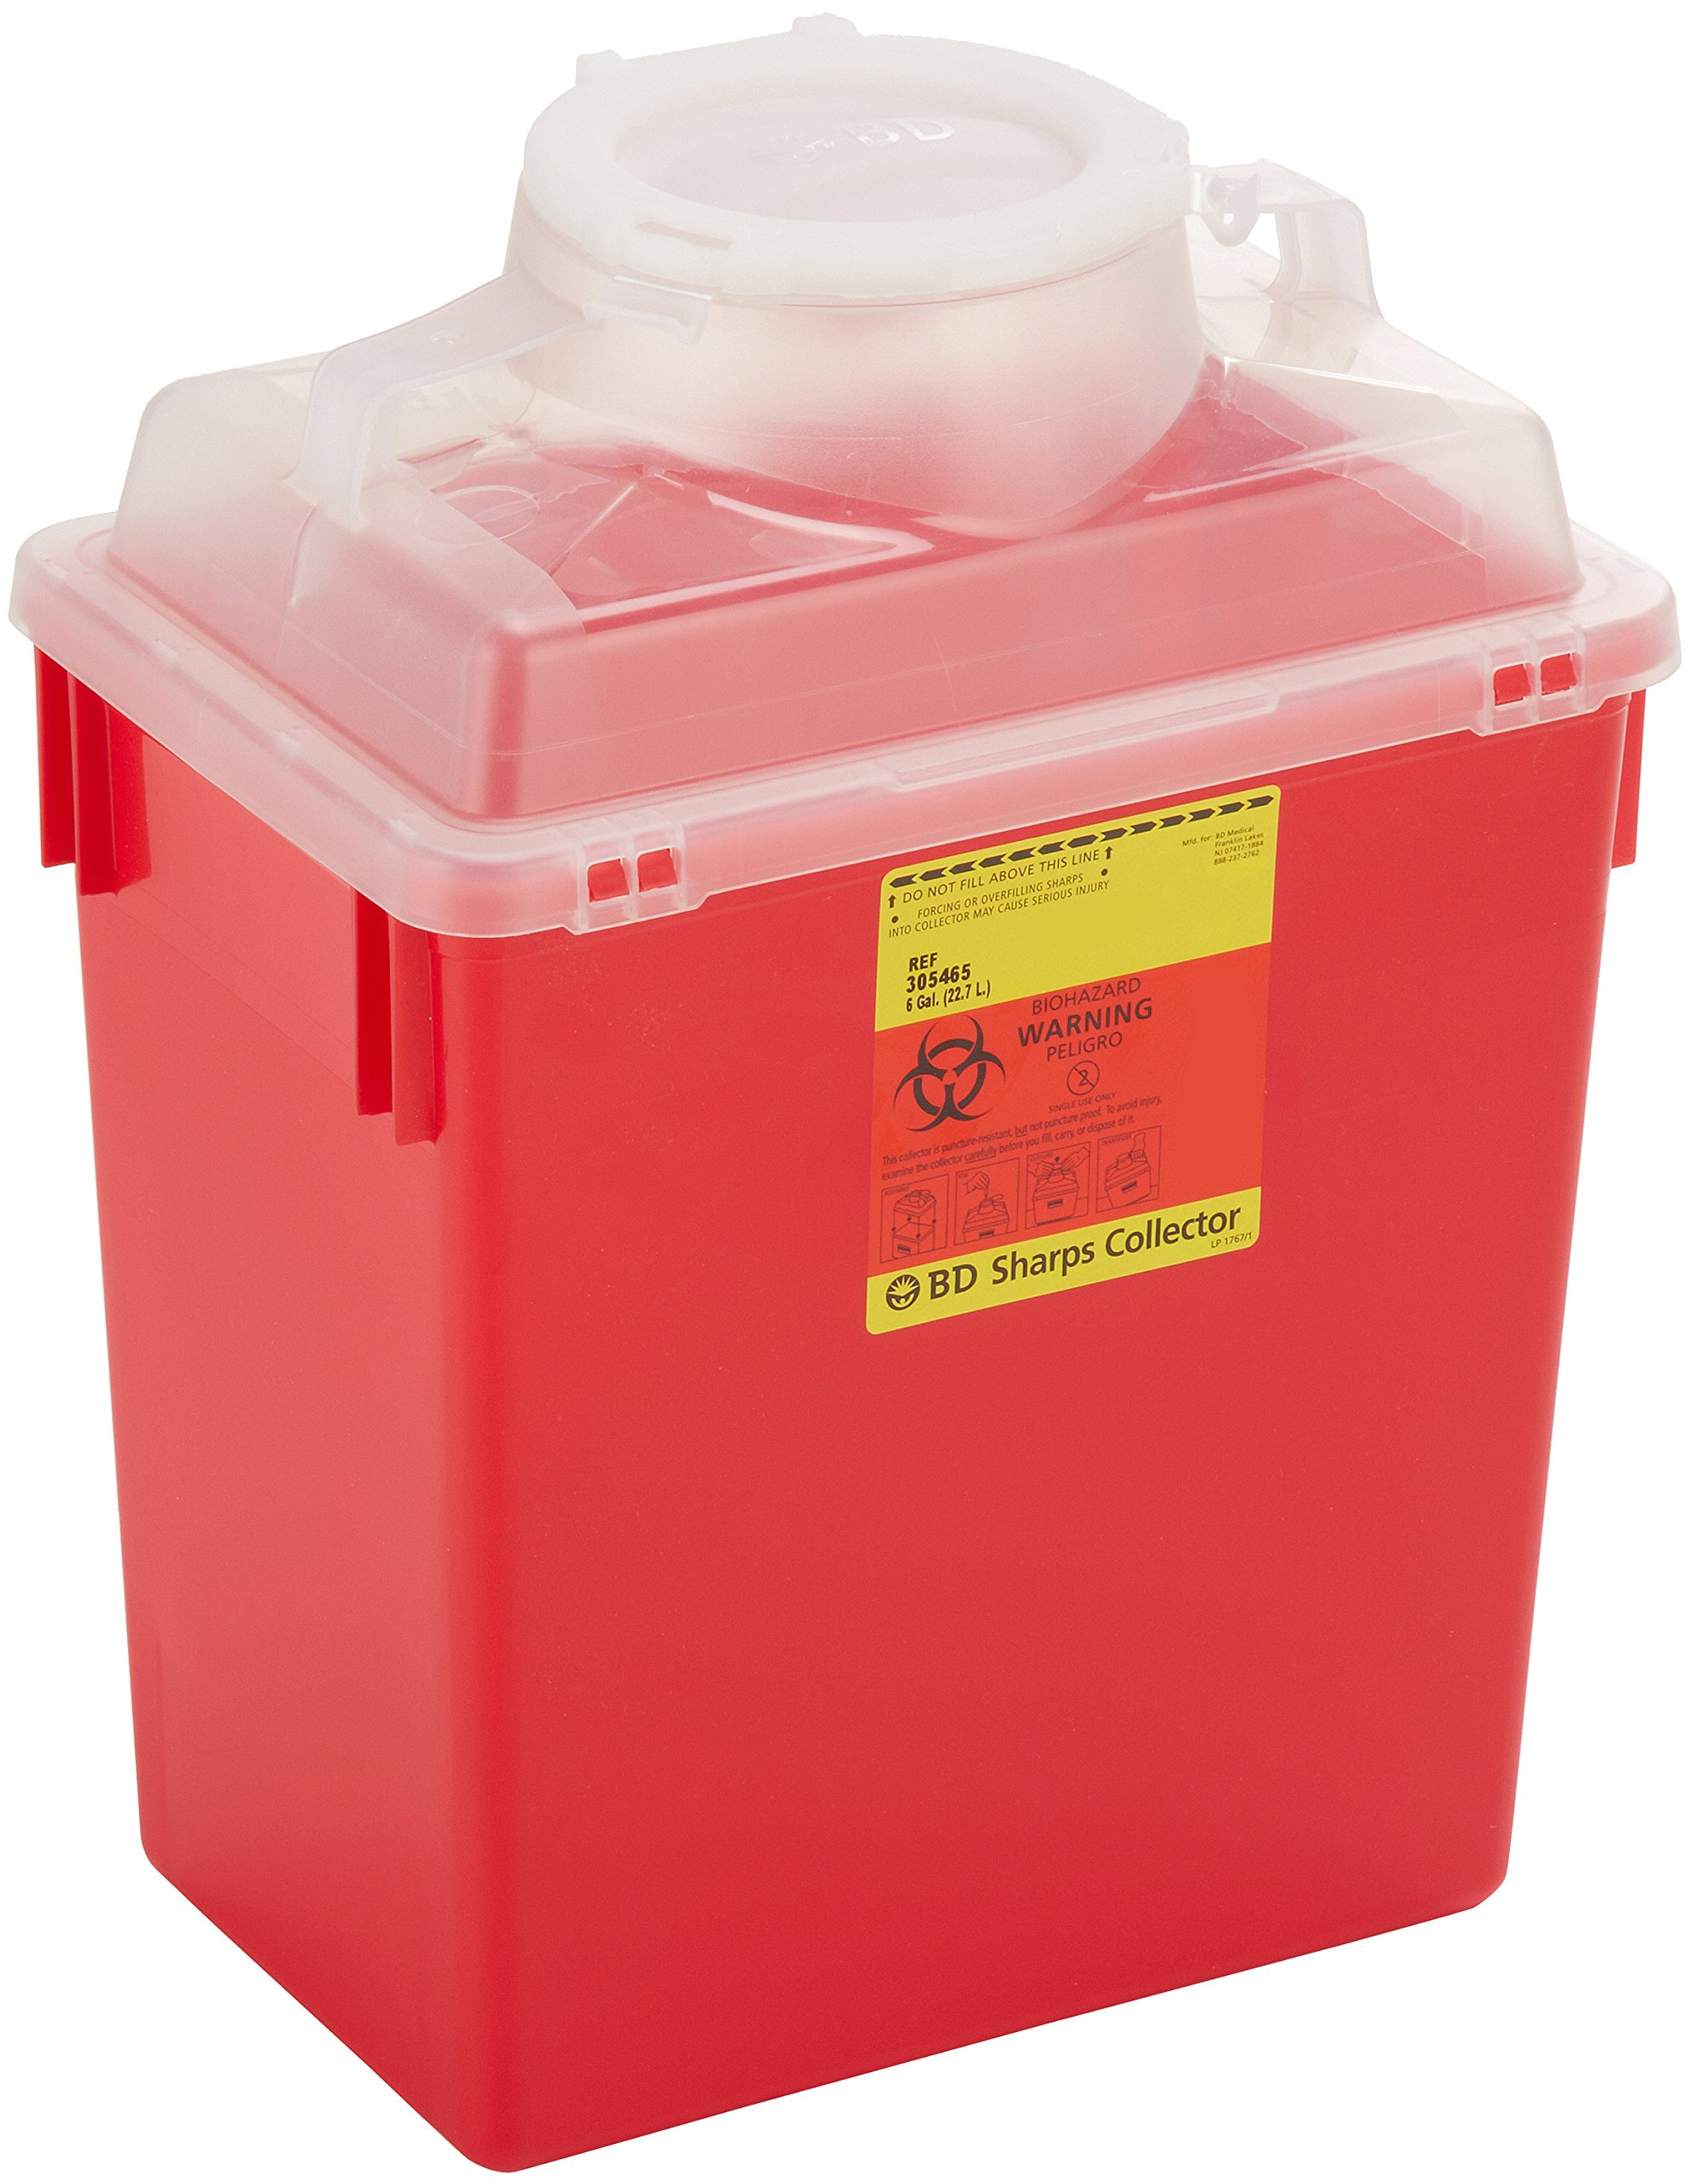 BD 305480 Multi-Use Nestable Sharps Collector with Large Funnel Clear Top, 12-1/2'' Width x 11-1/2'' Height x 8-1/2'' Depth, 14 Quart Capacity, Red Base/ Natural Top (Case of 20)